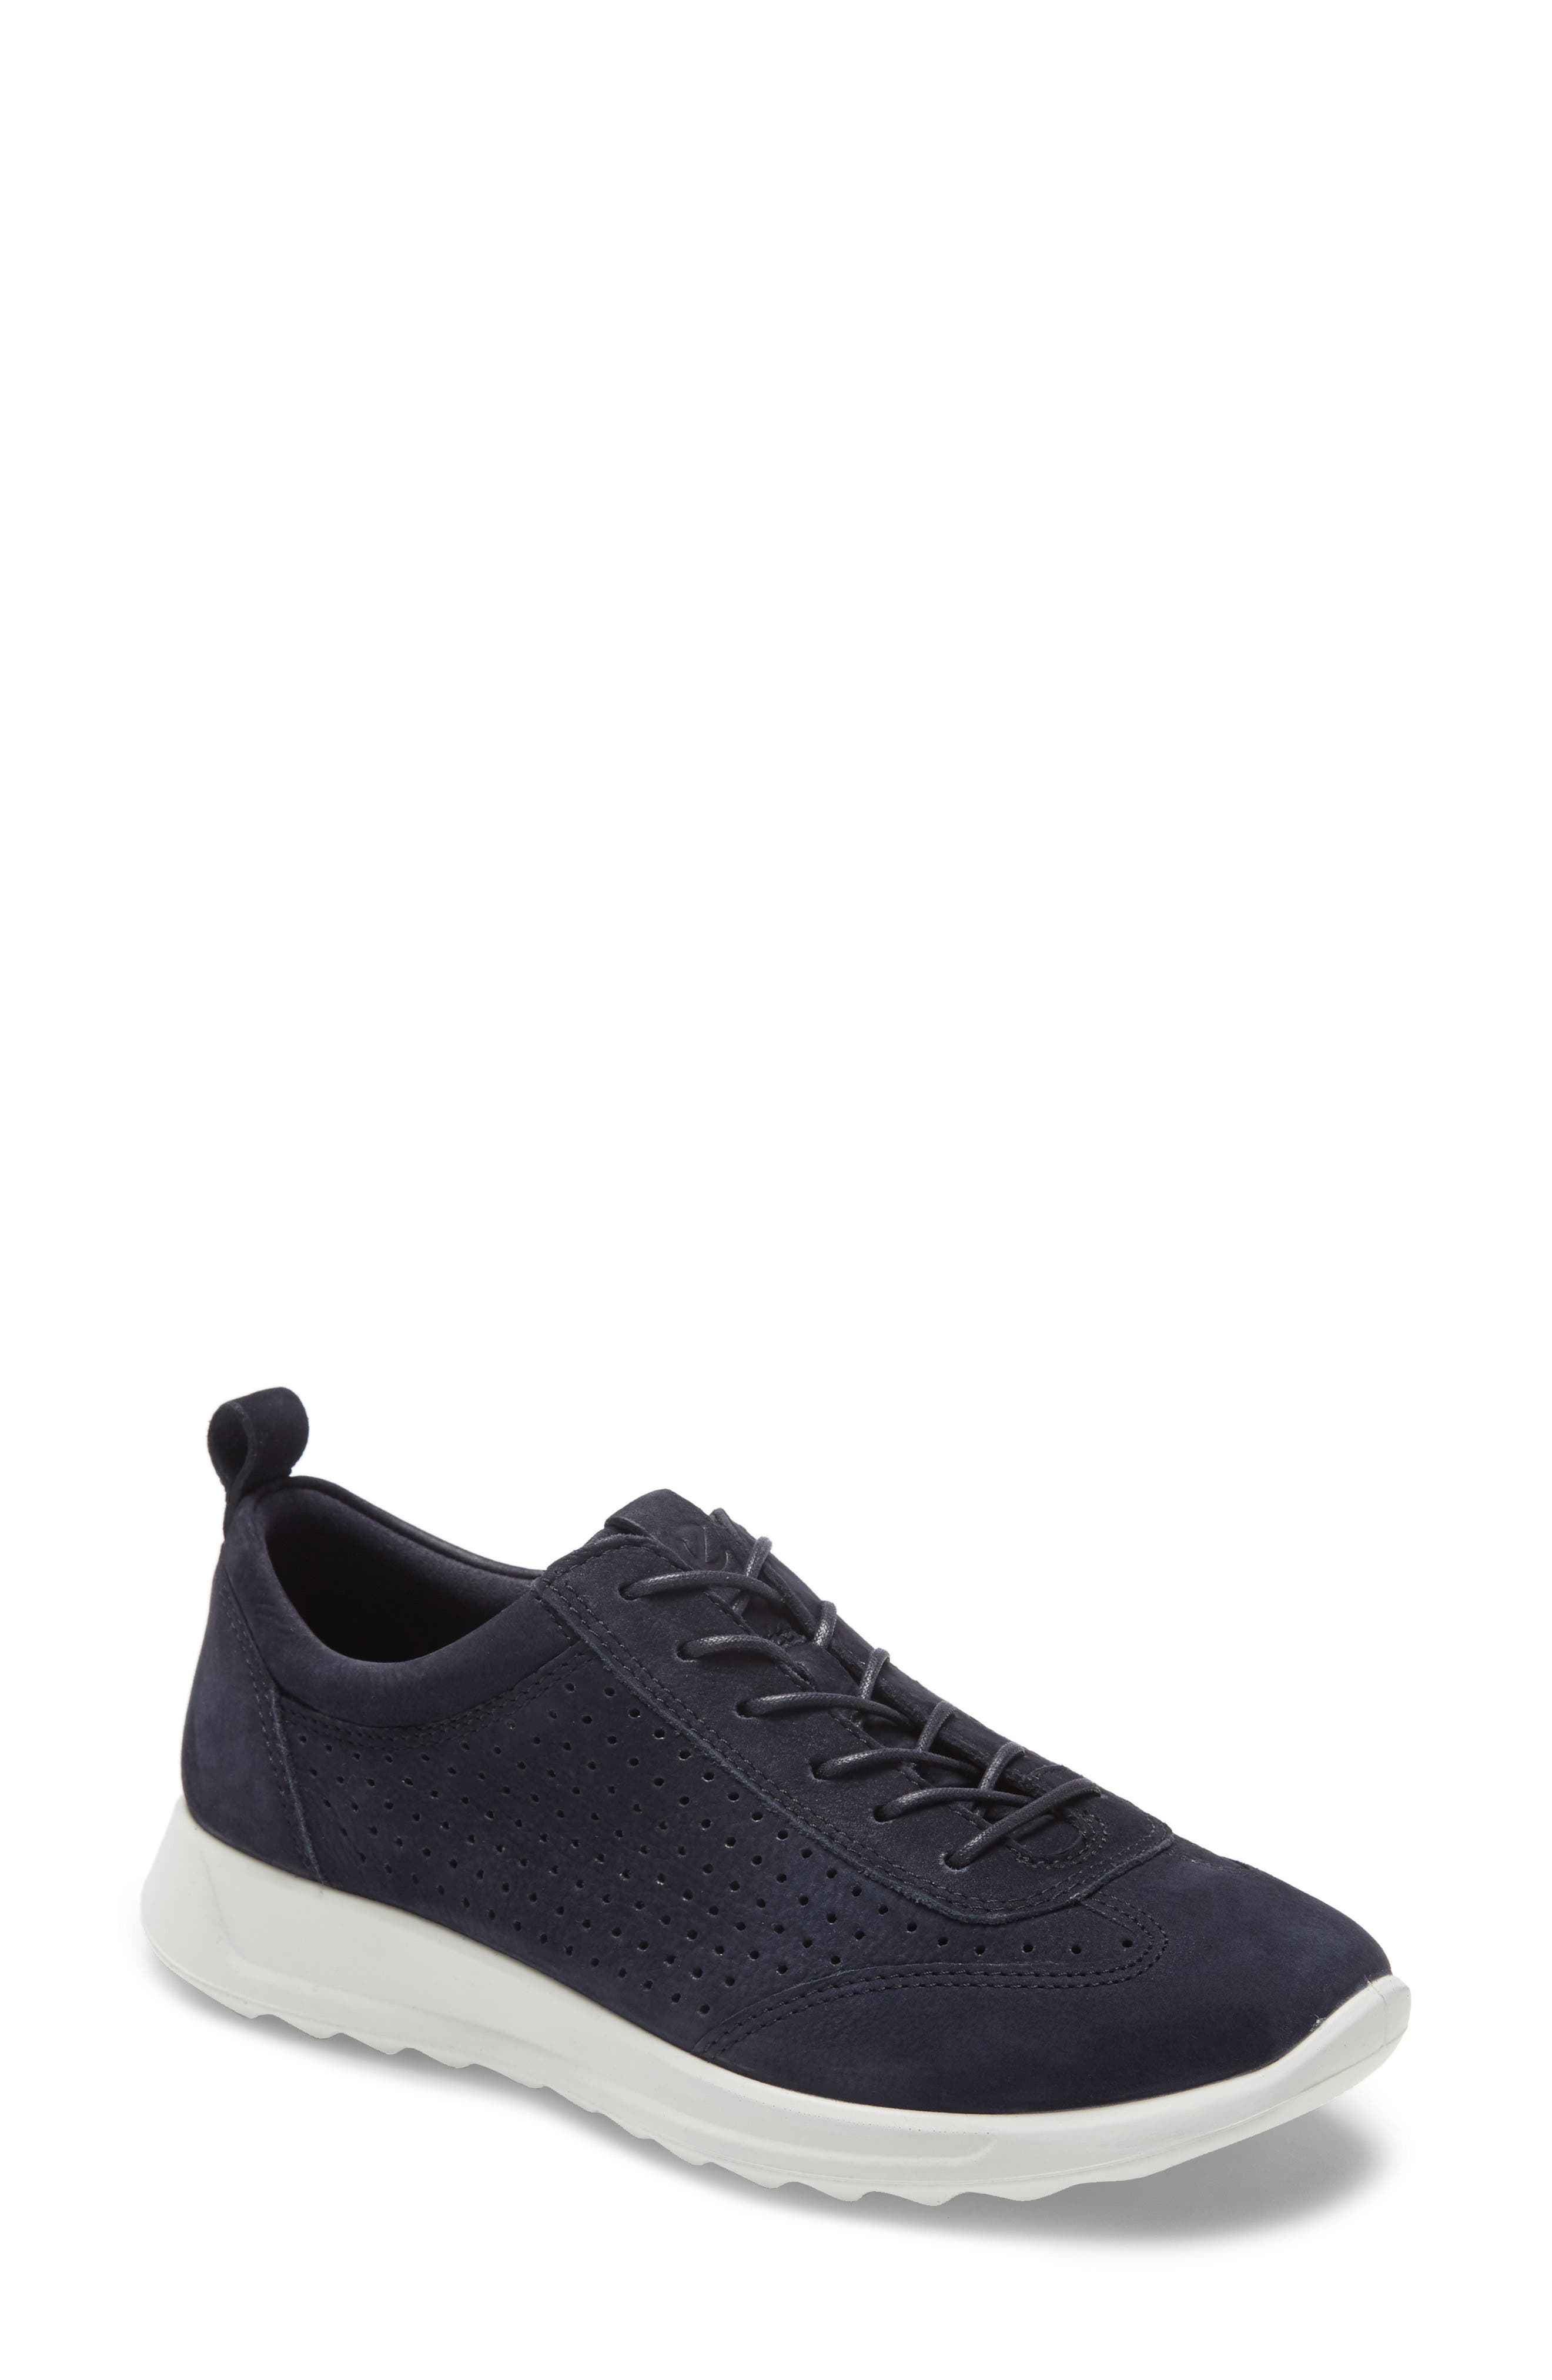 Image of ECCO Flexure Runner Perforated Sneaker